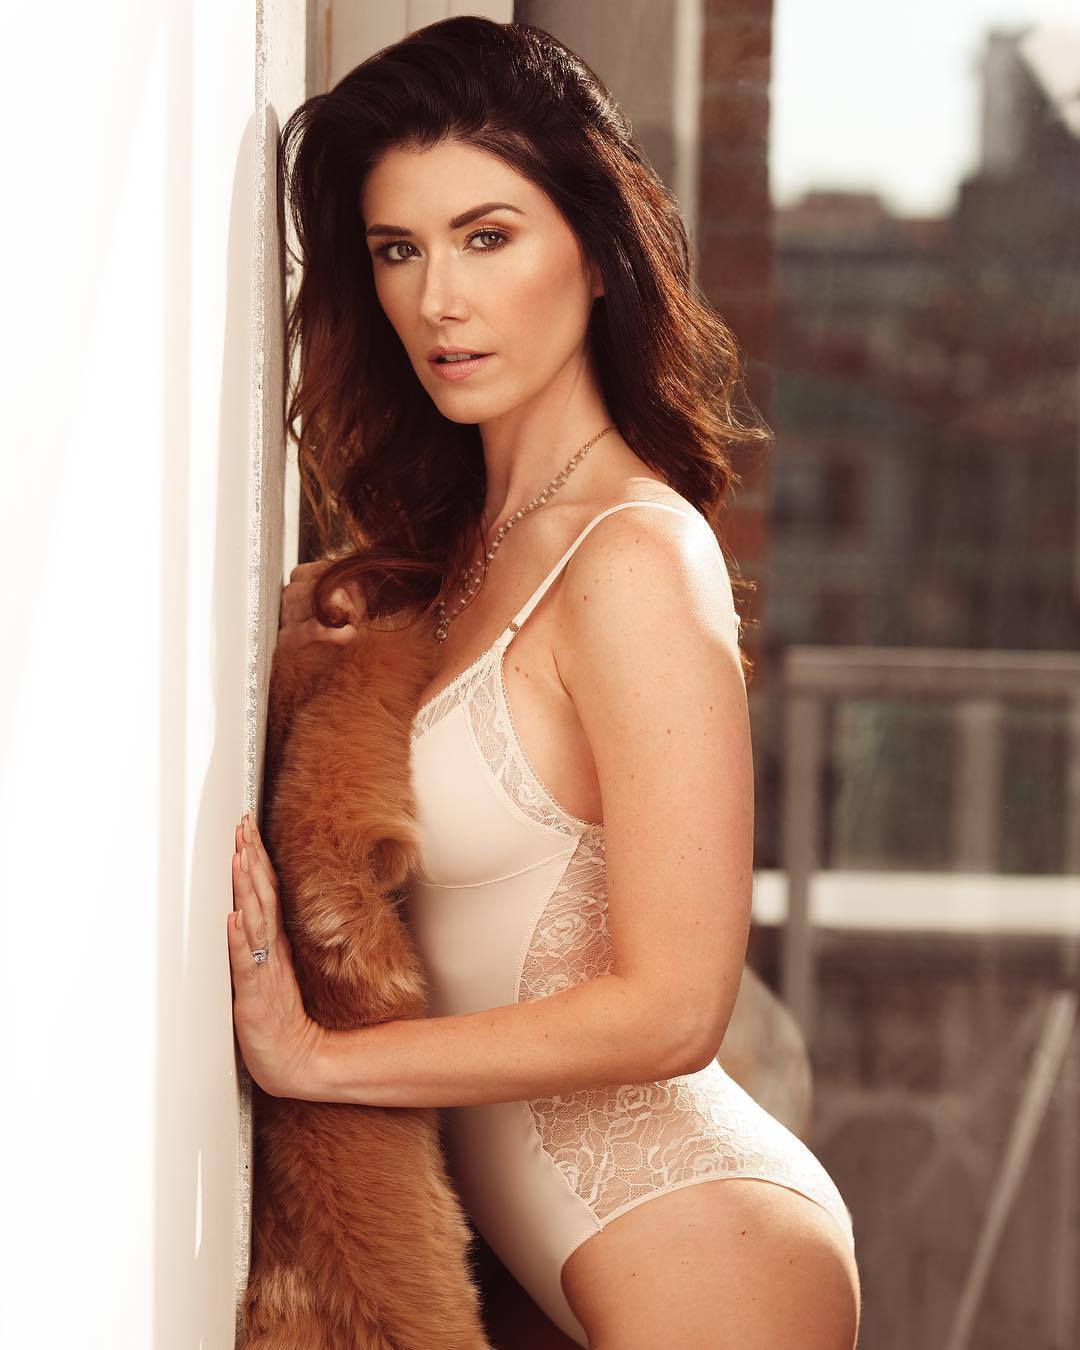 Jewel Staite Sexy Pics 49 hot pictures of jewel staite are truly work of art